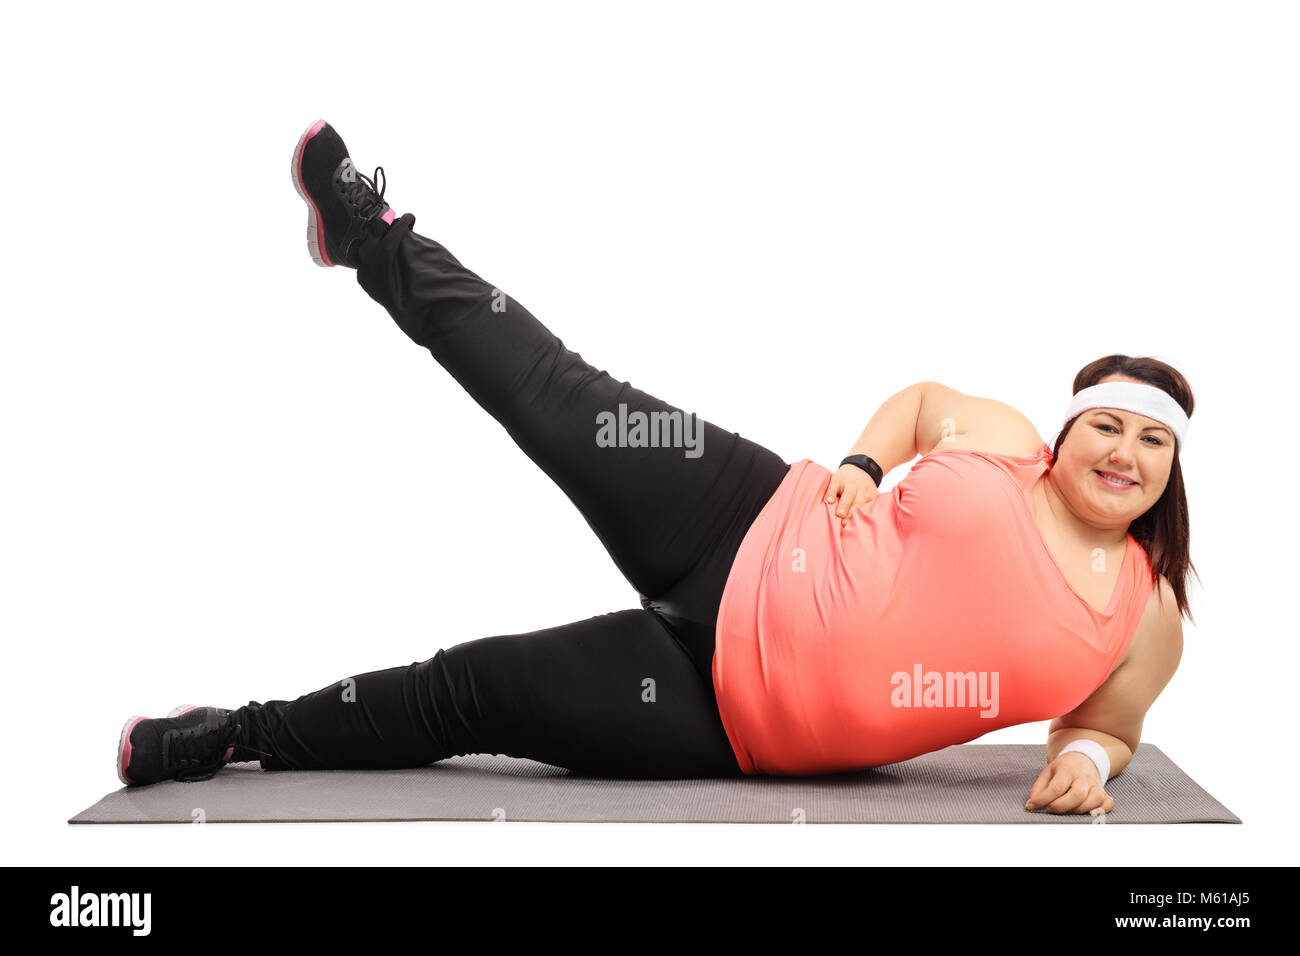 Overweight woman working out on an exercise mat isolated on white background - Stock Image